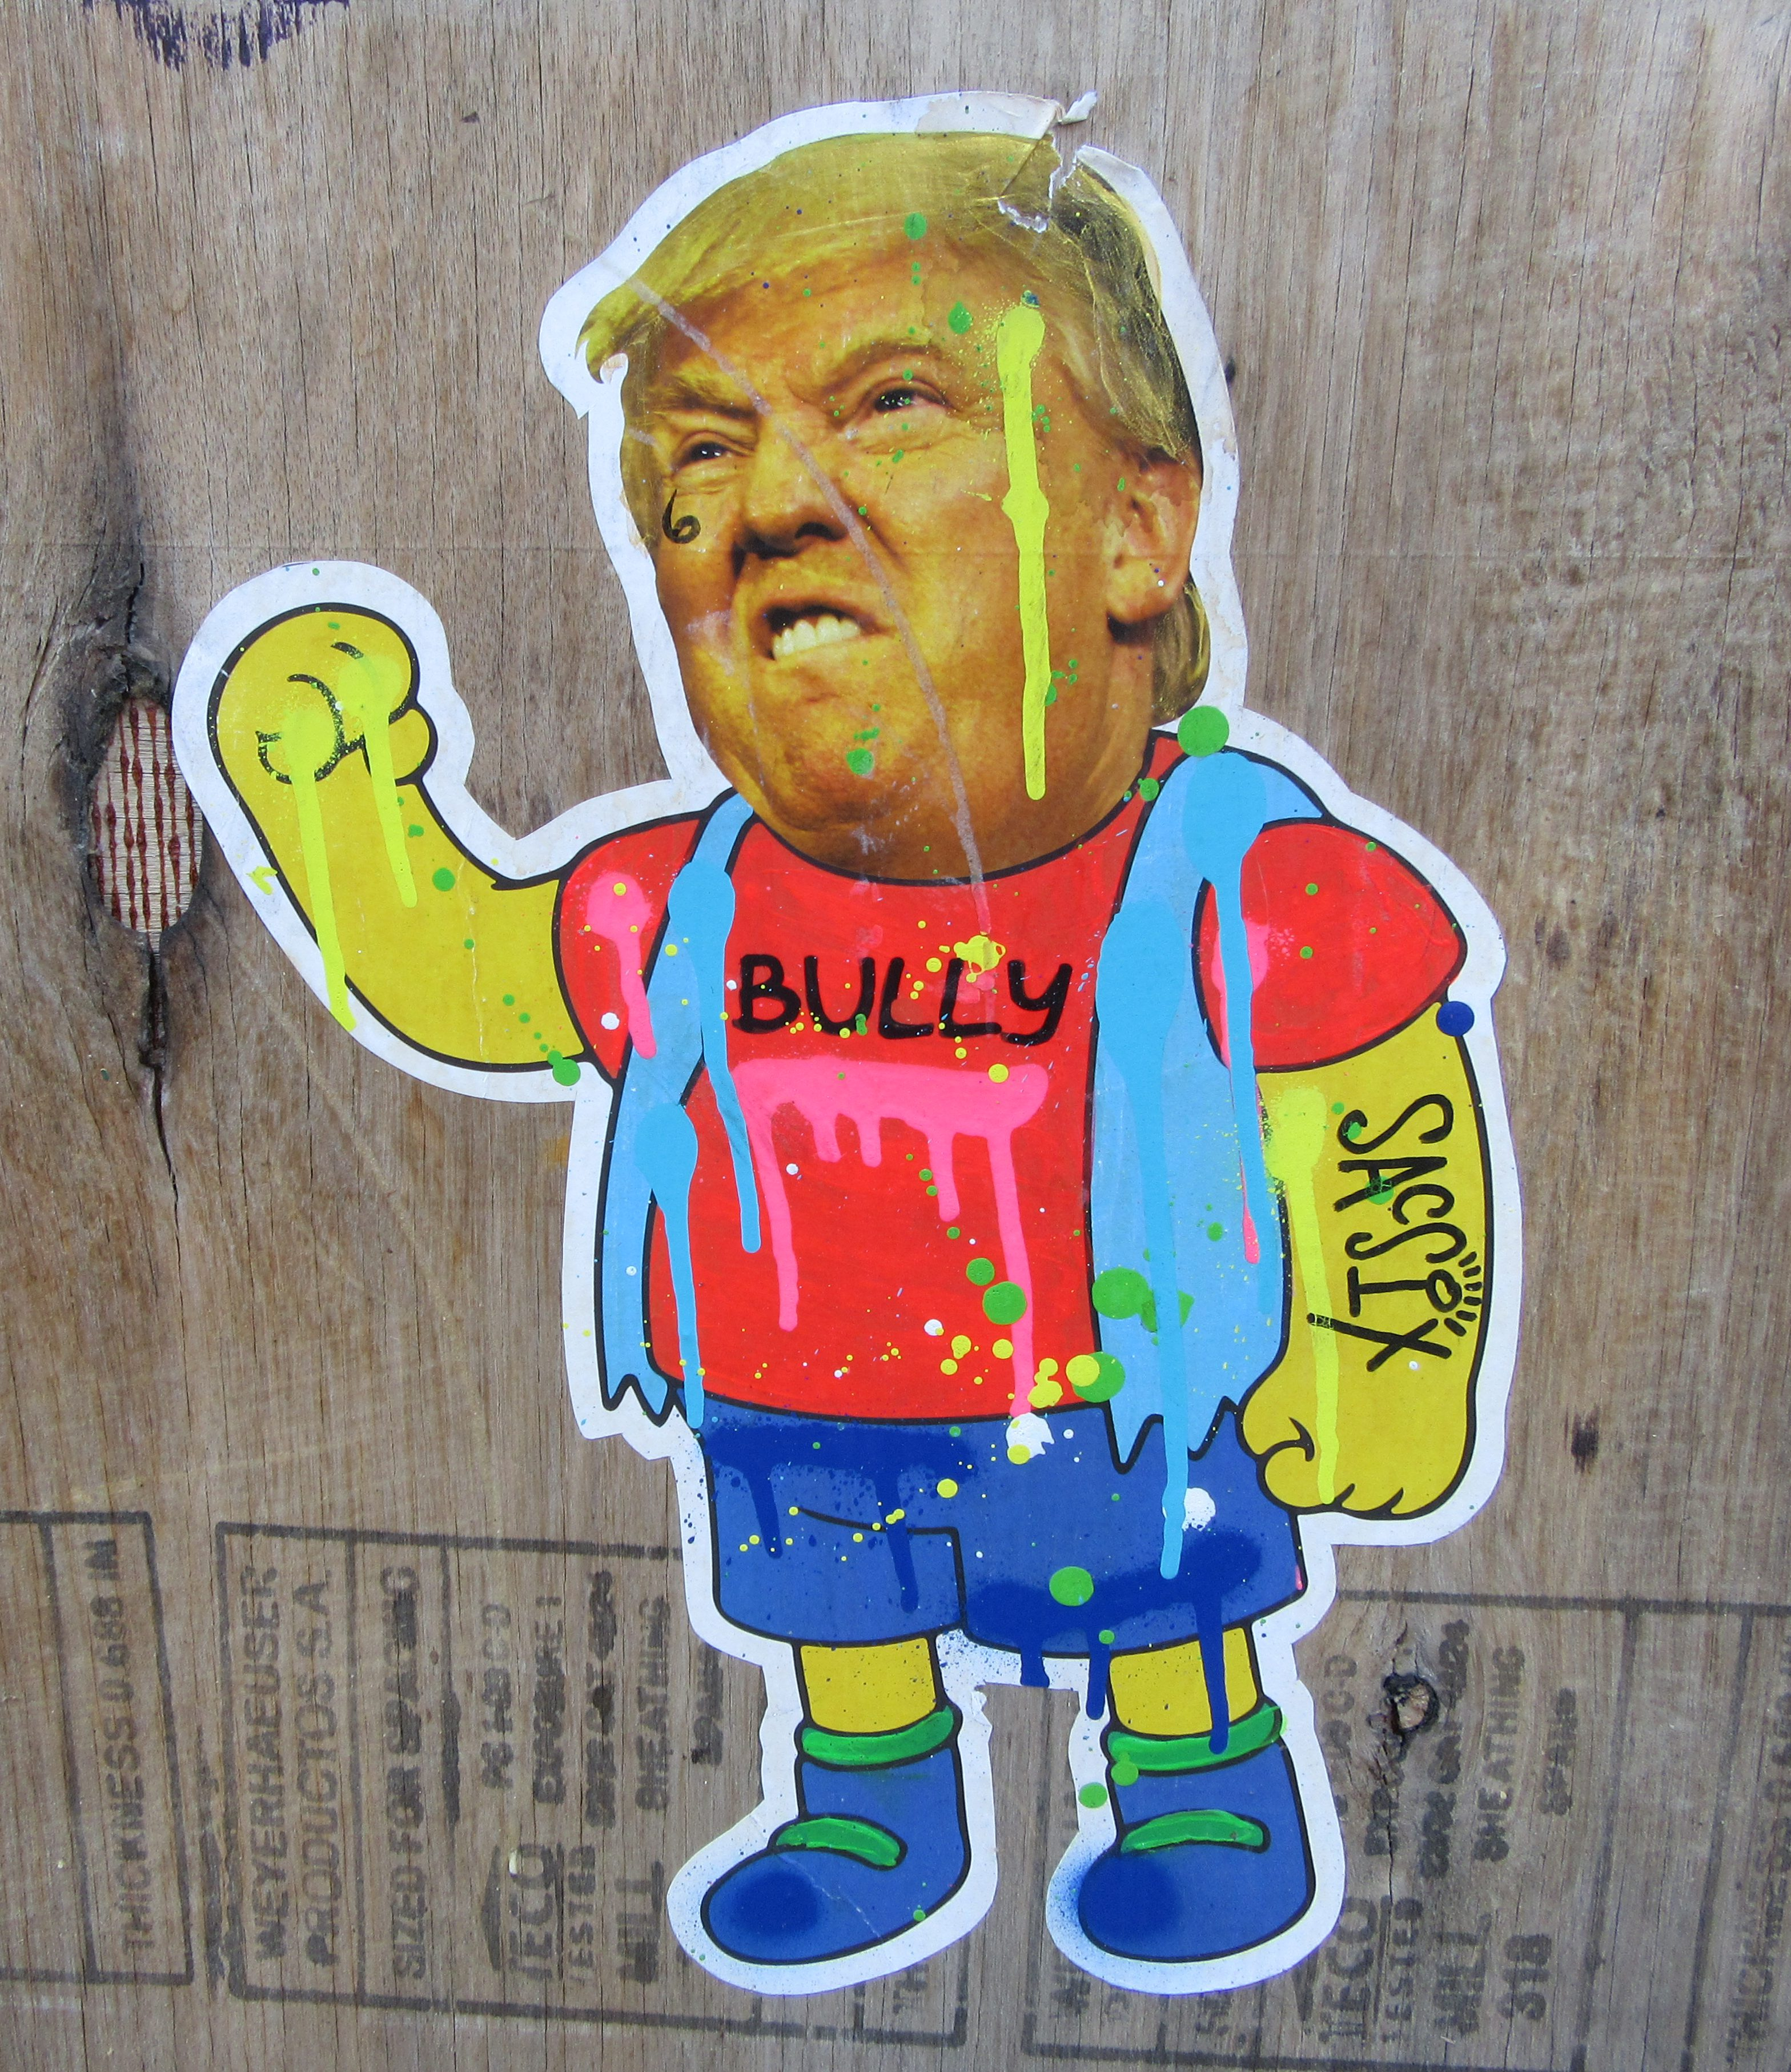 donald trump is street art part 5 trump as nelson from the simpsons